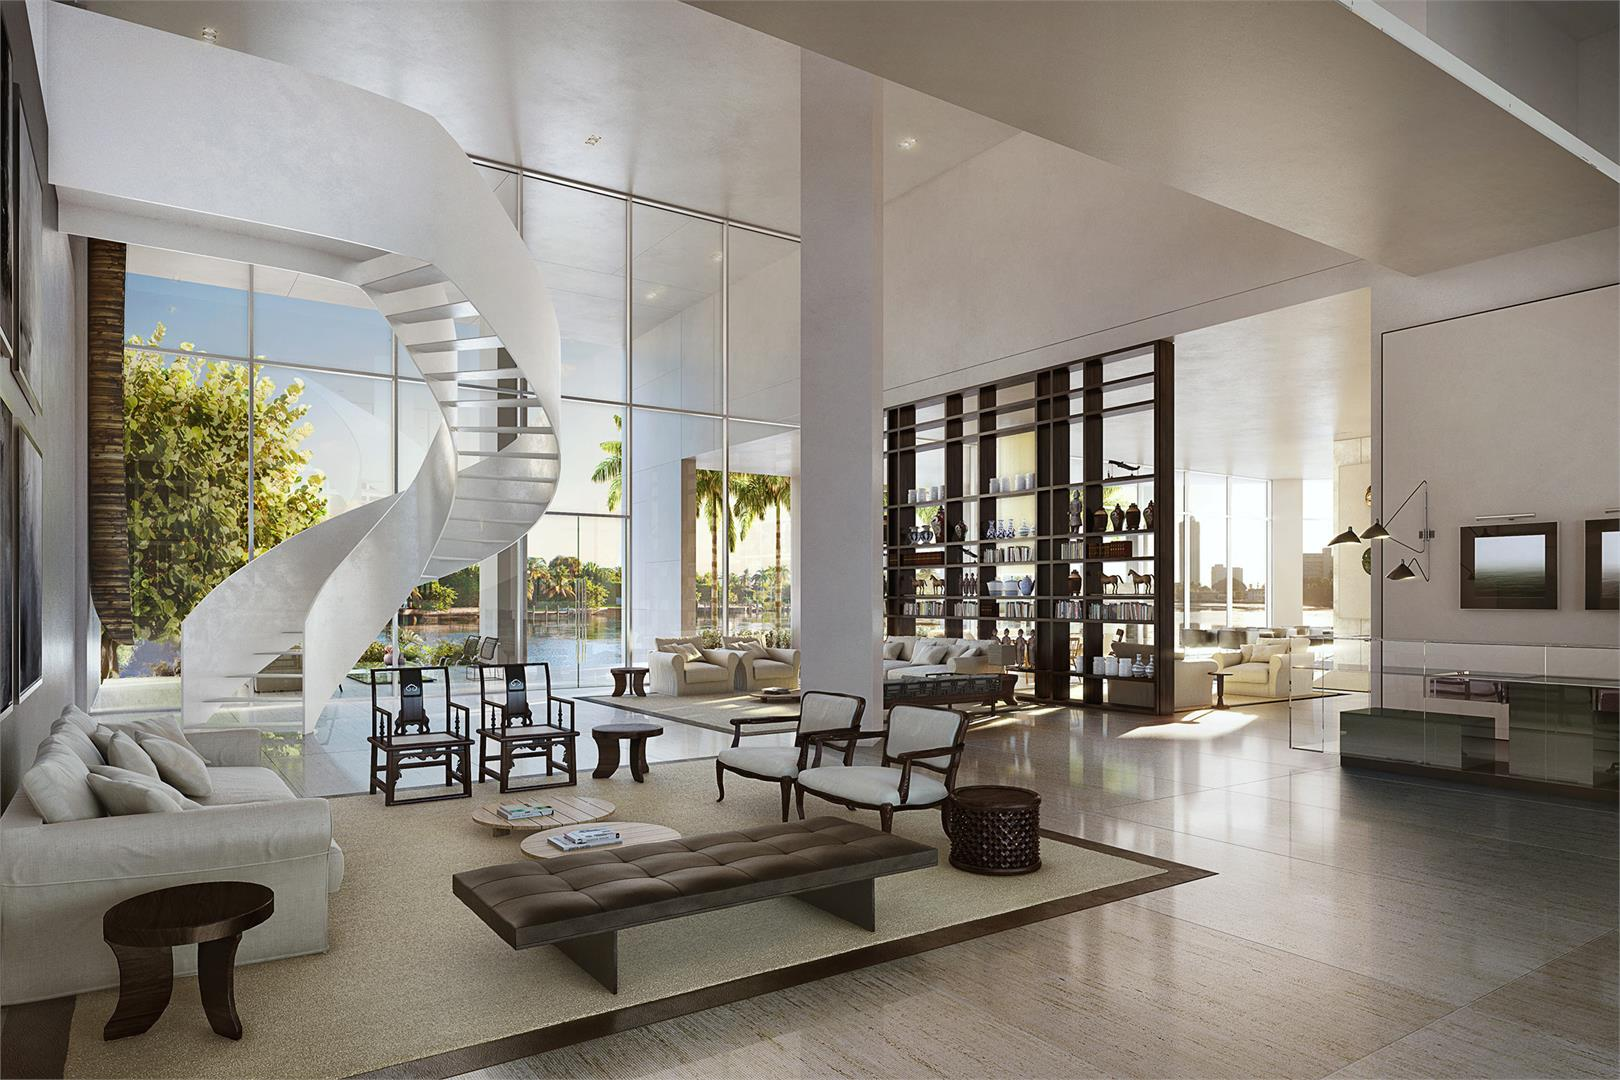 The Ritz-Carlton Residences - Image 10